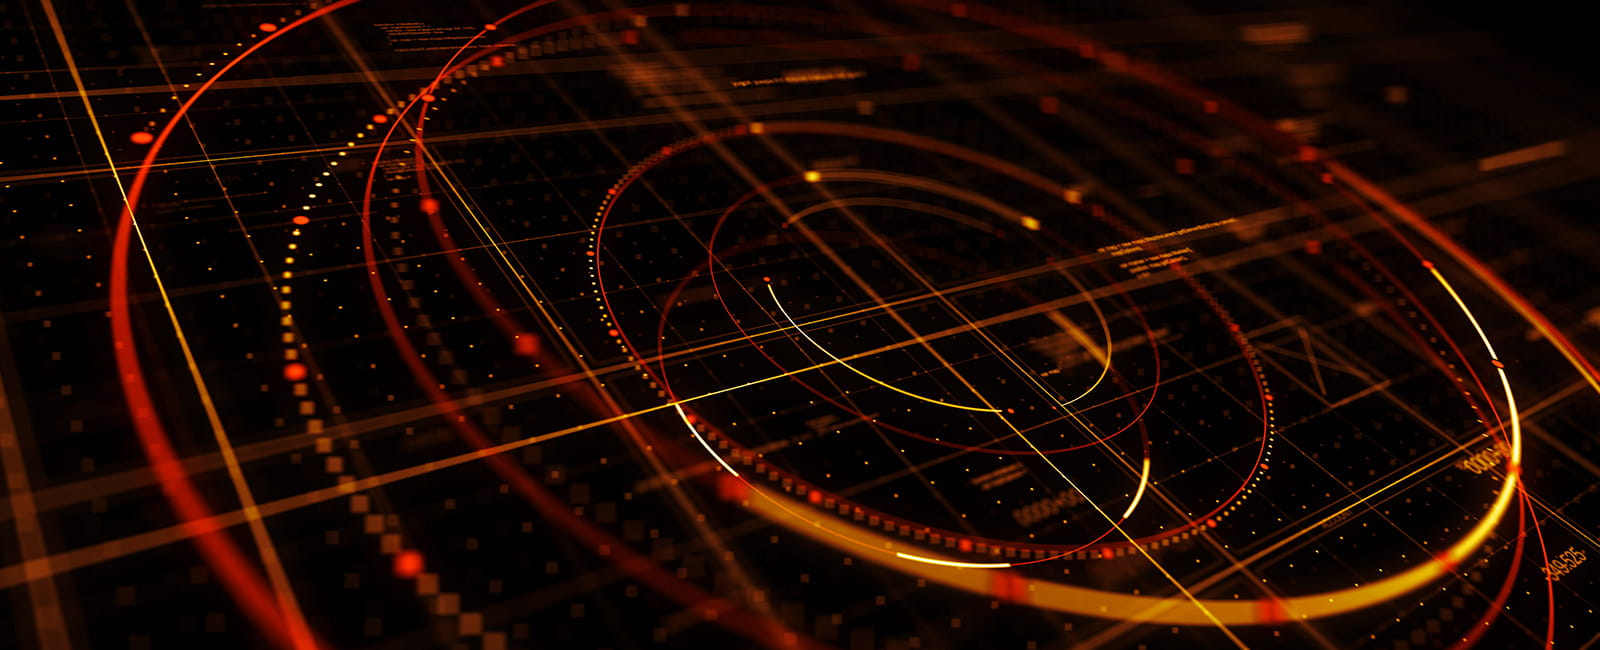 Wide shot of circular data graph illuminated